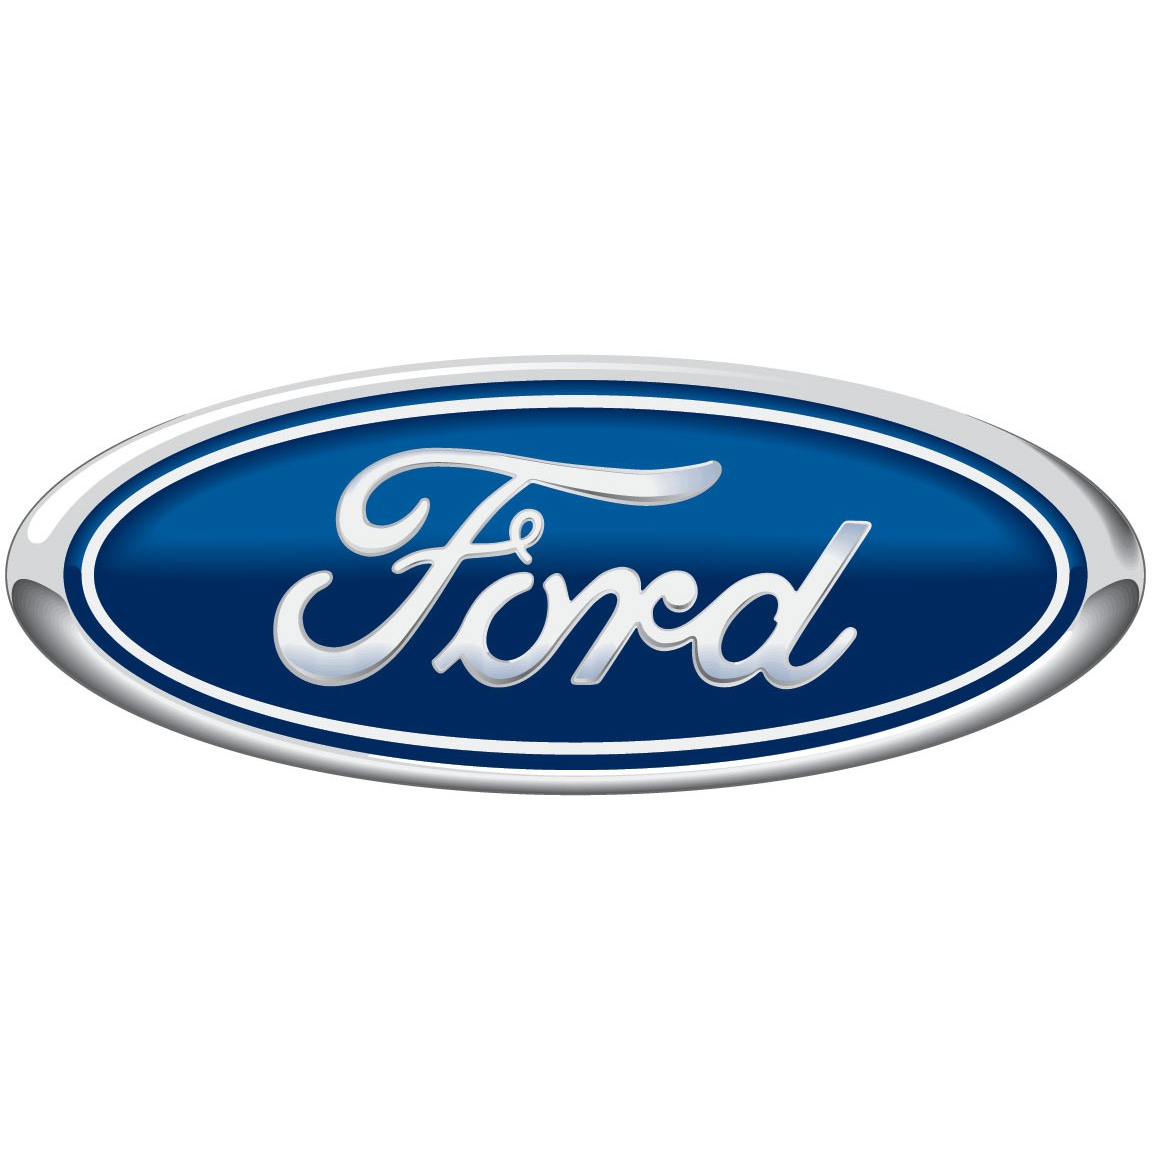 Find out more about the Ford Employee Discount on Scag and Ferris Lawn Mowing Equipment